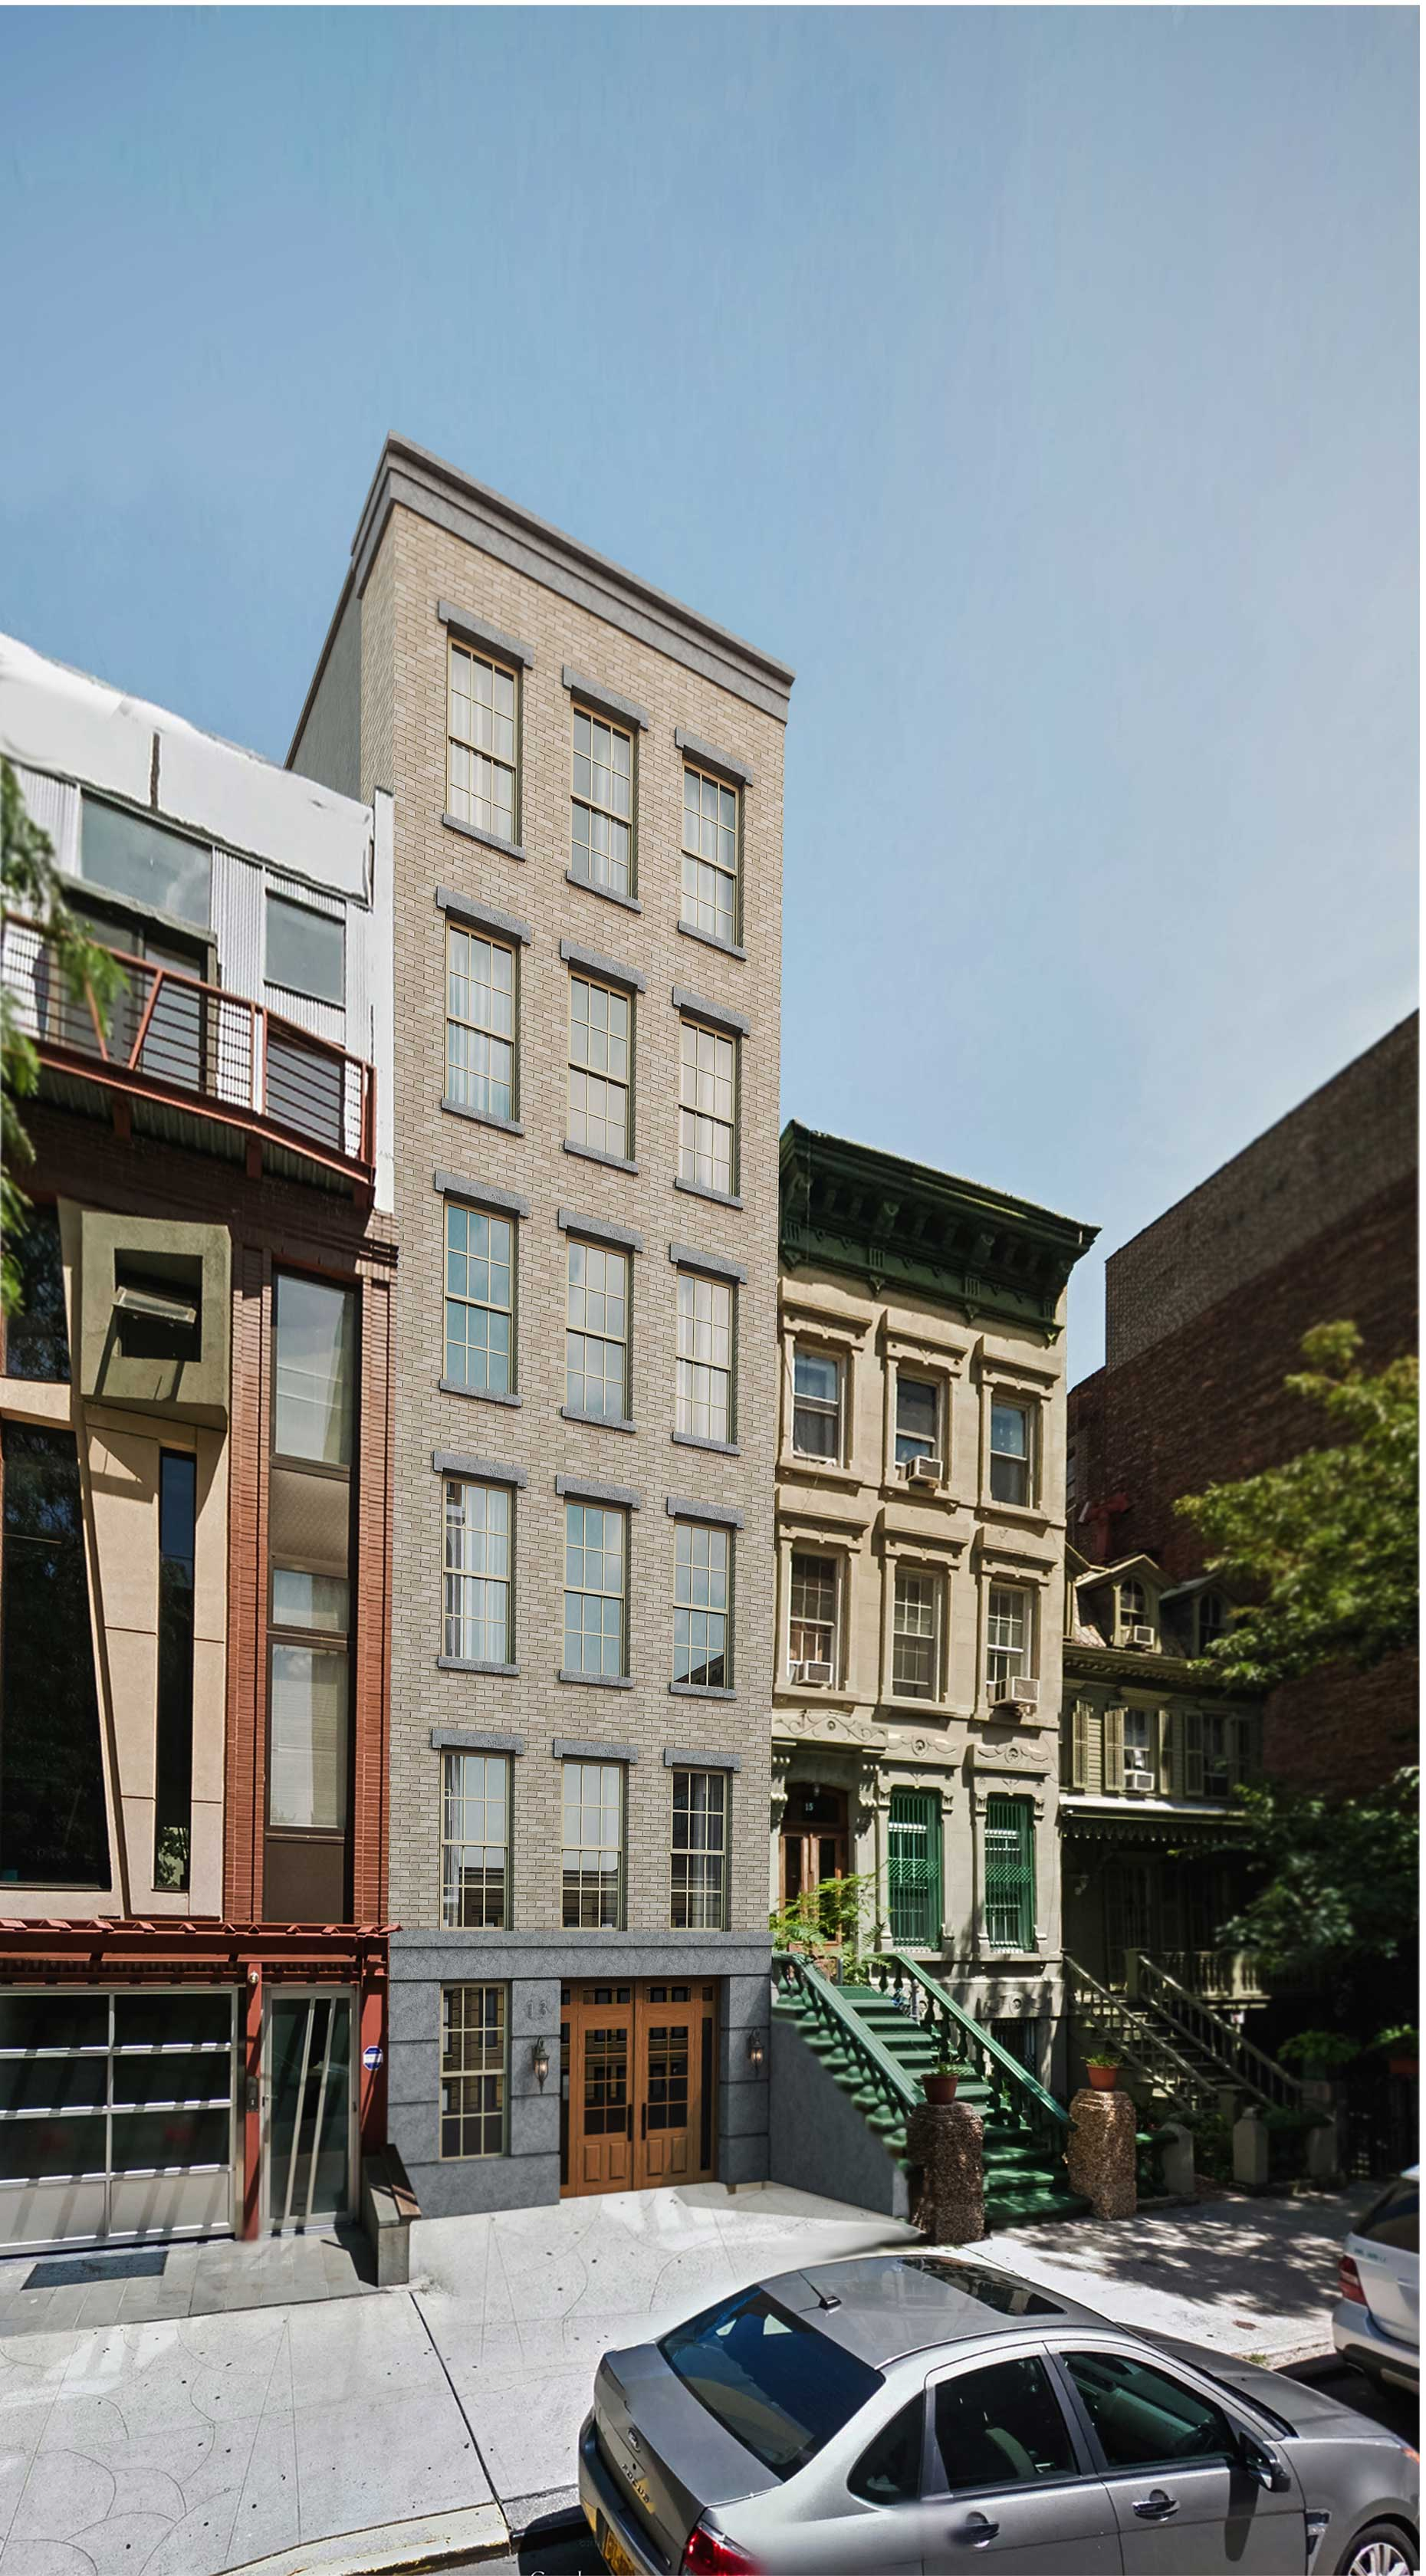 13 East 128th Street, rendering by Issac and Stern Architects